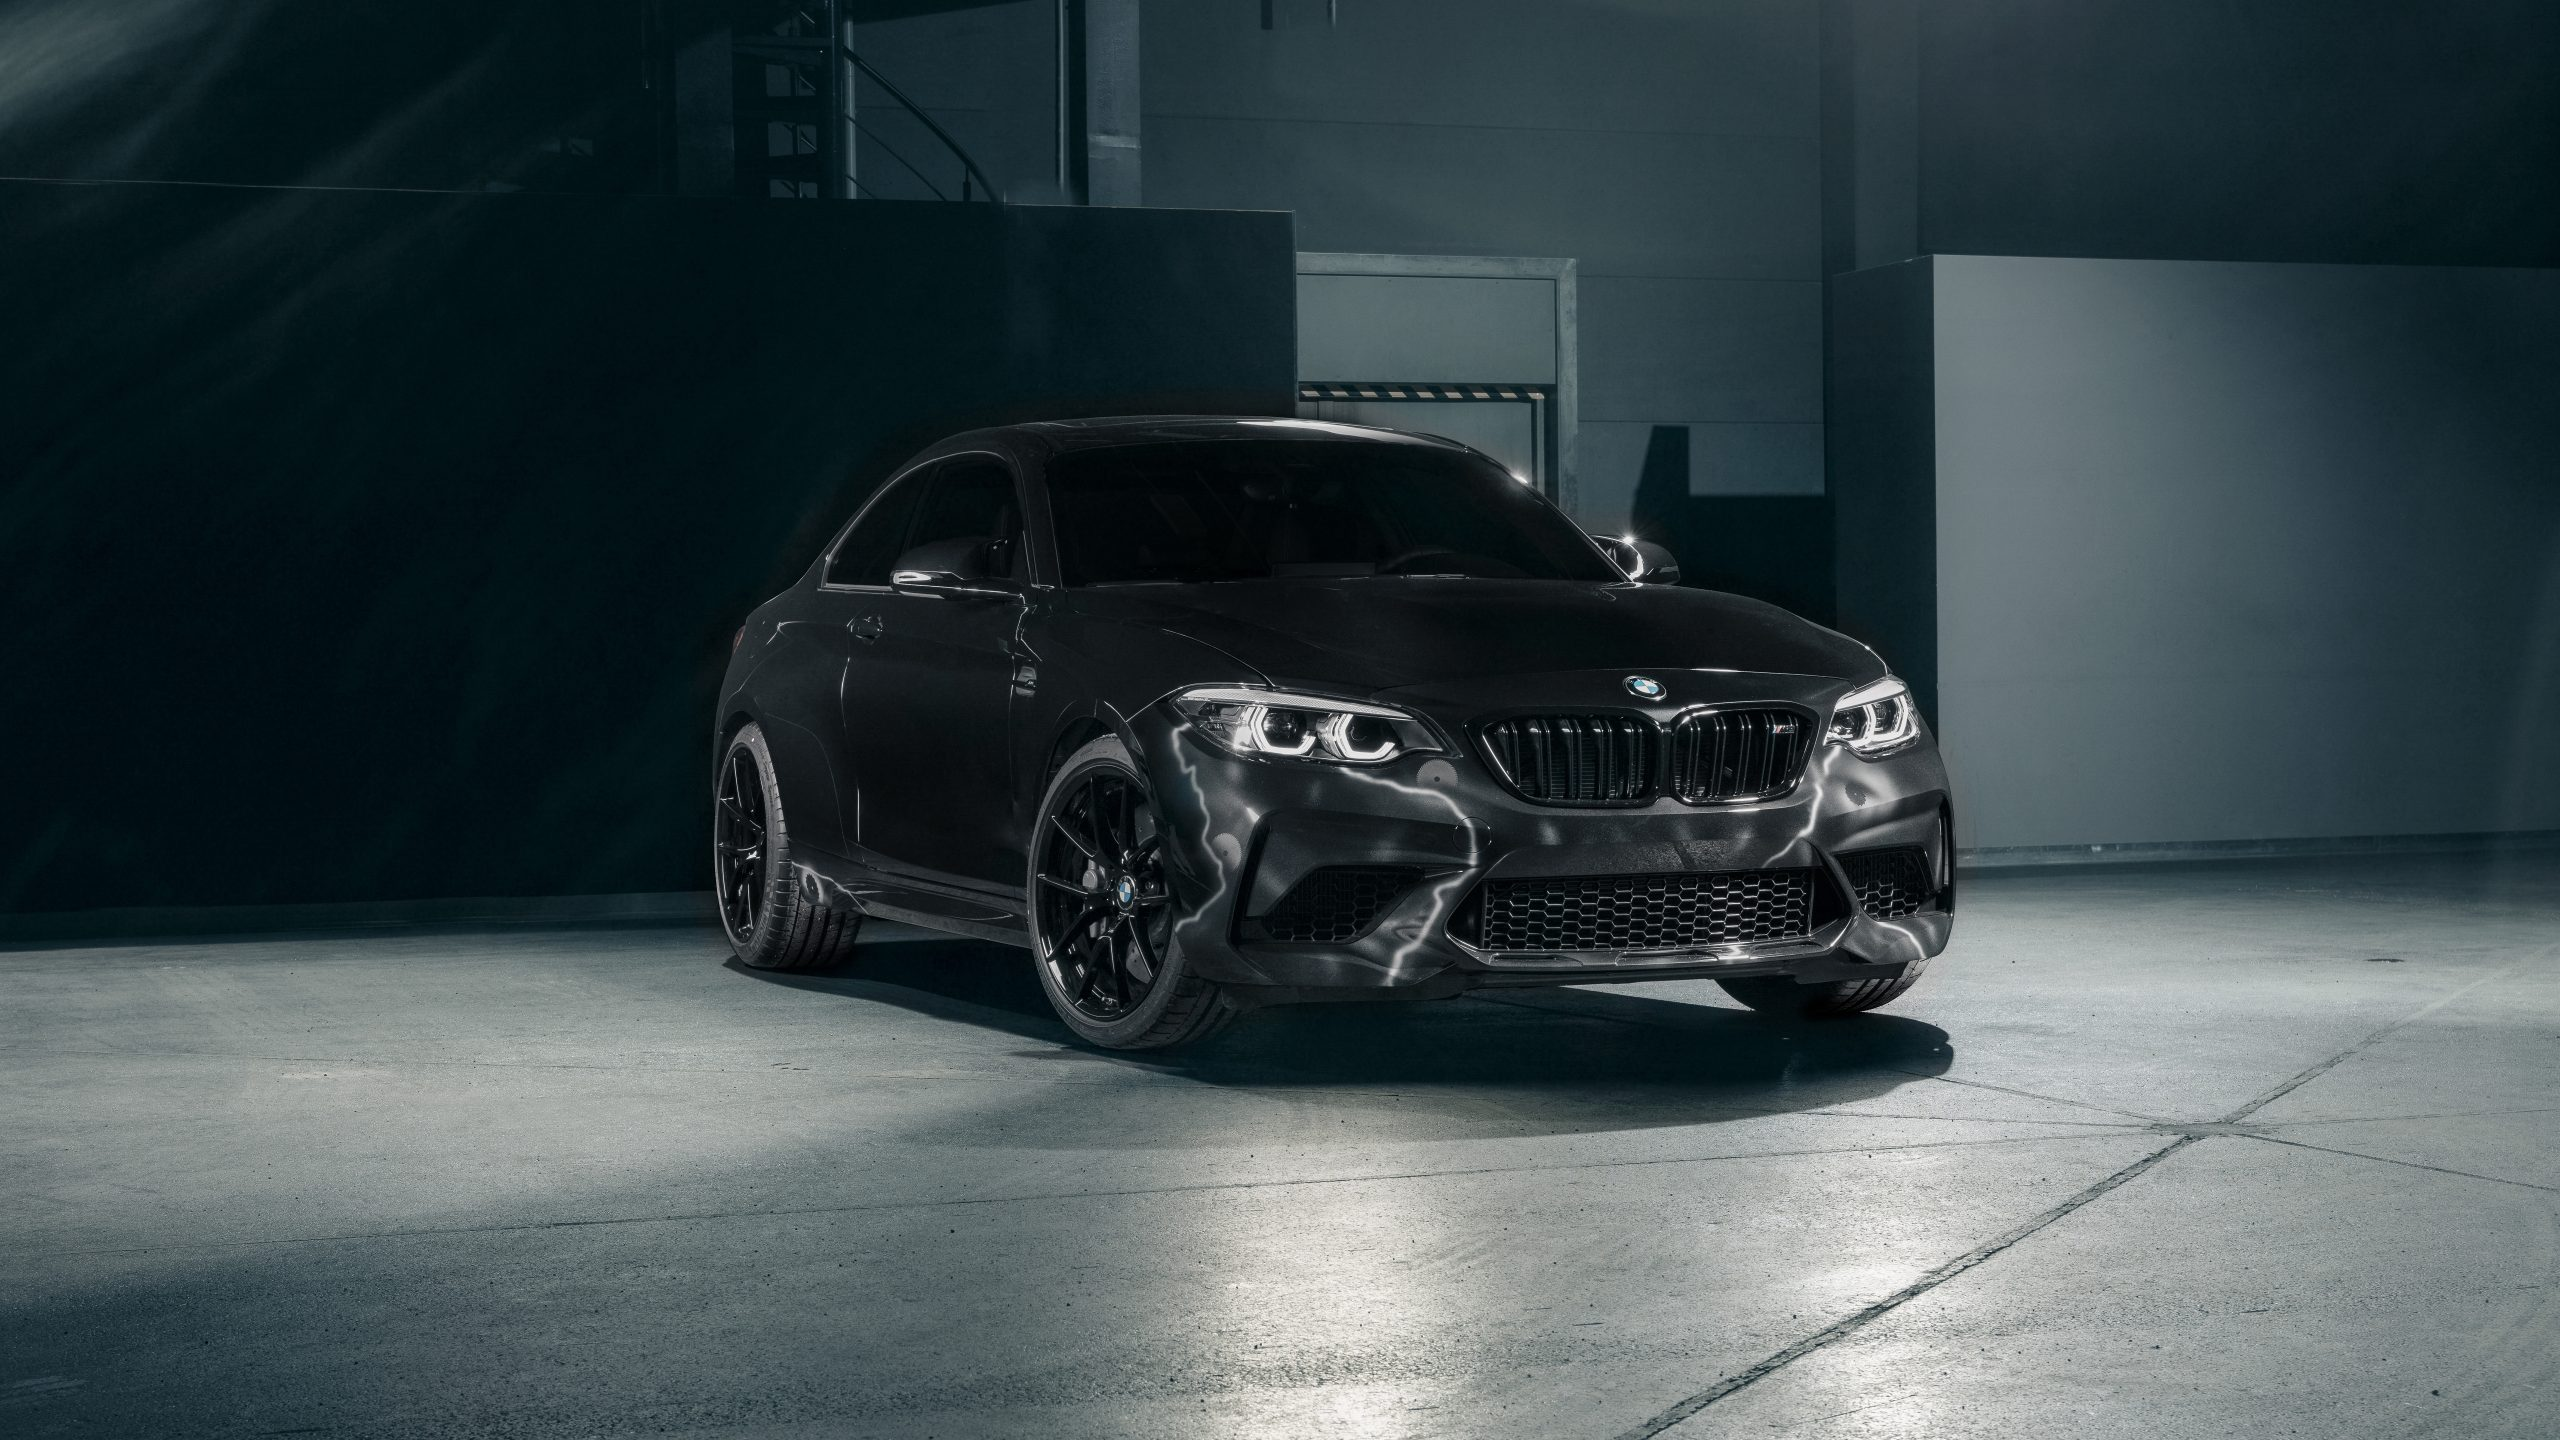 2020 bmw m2 edition designed by futura 2000 4k 8k